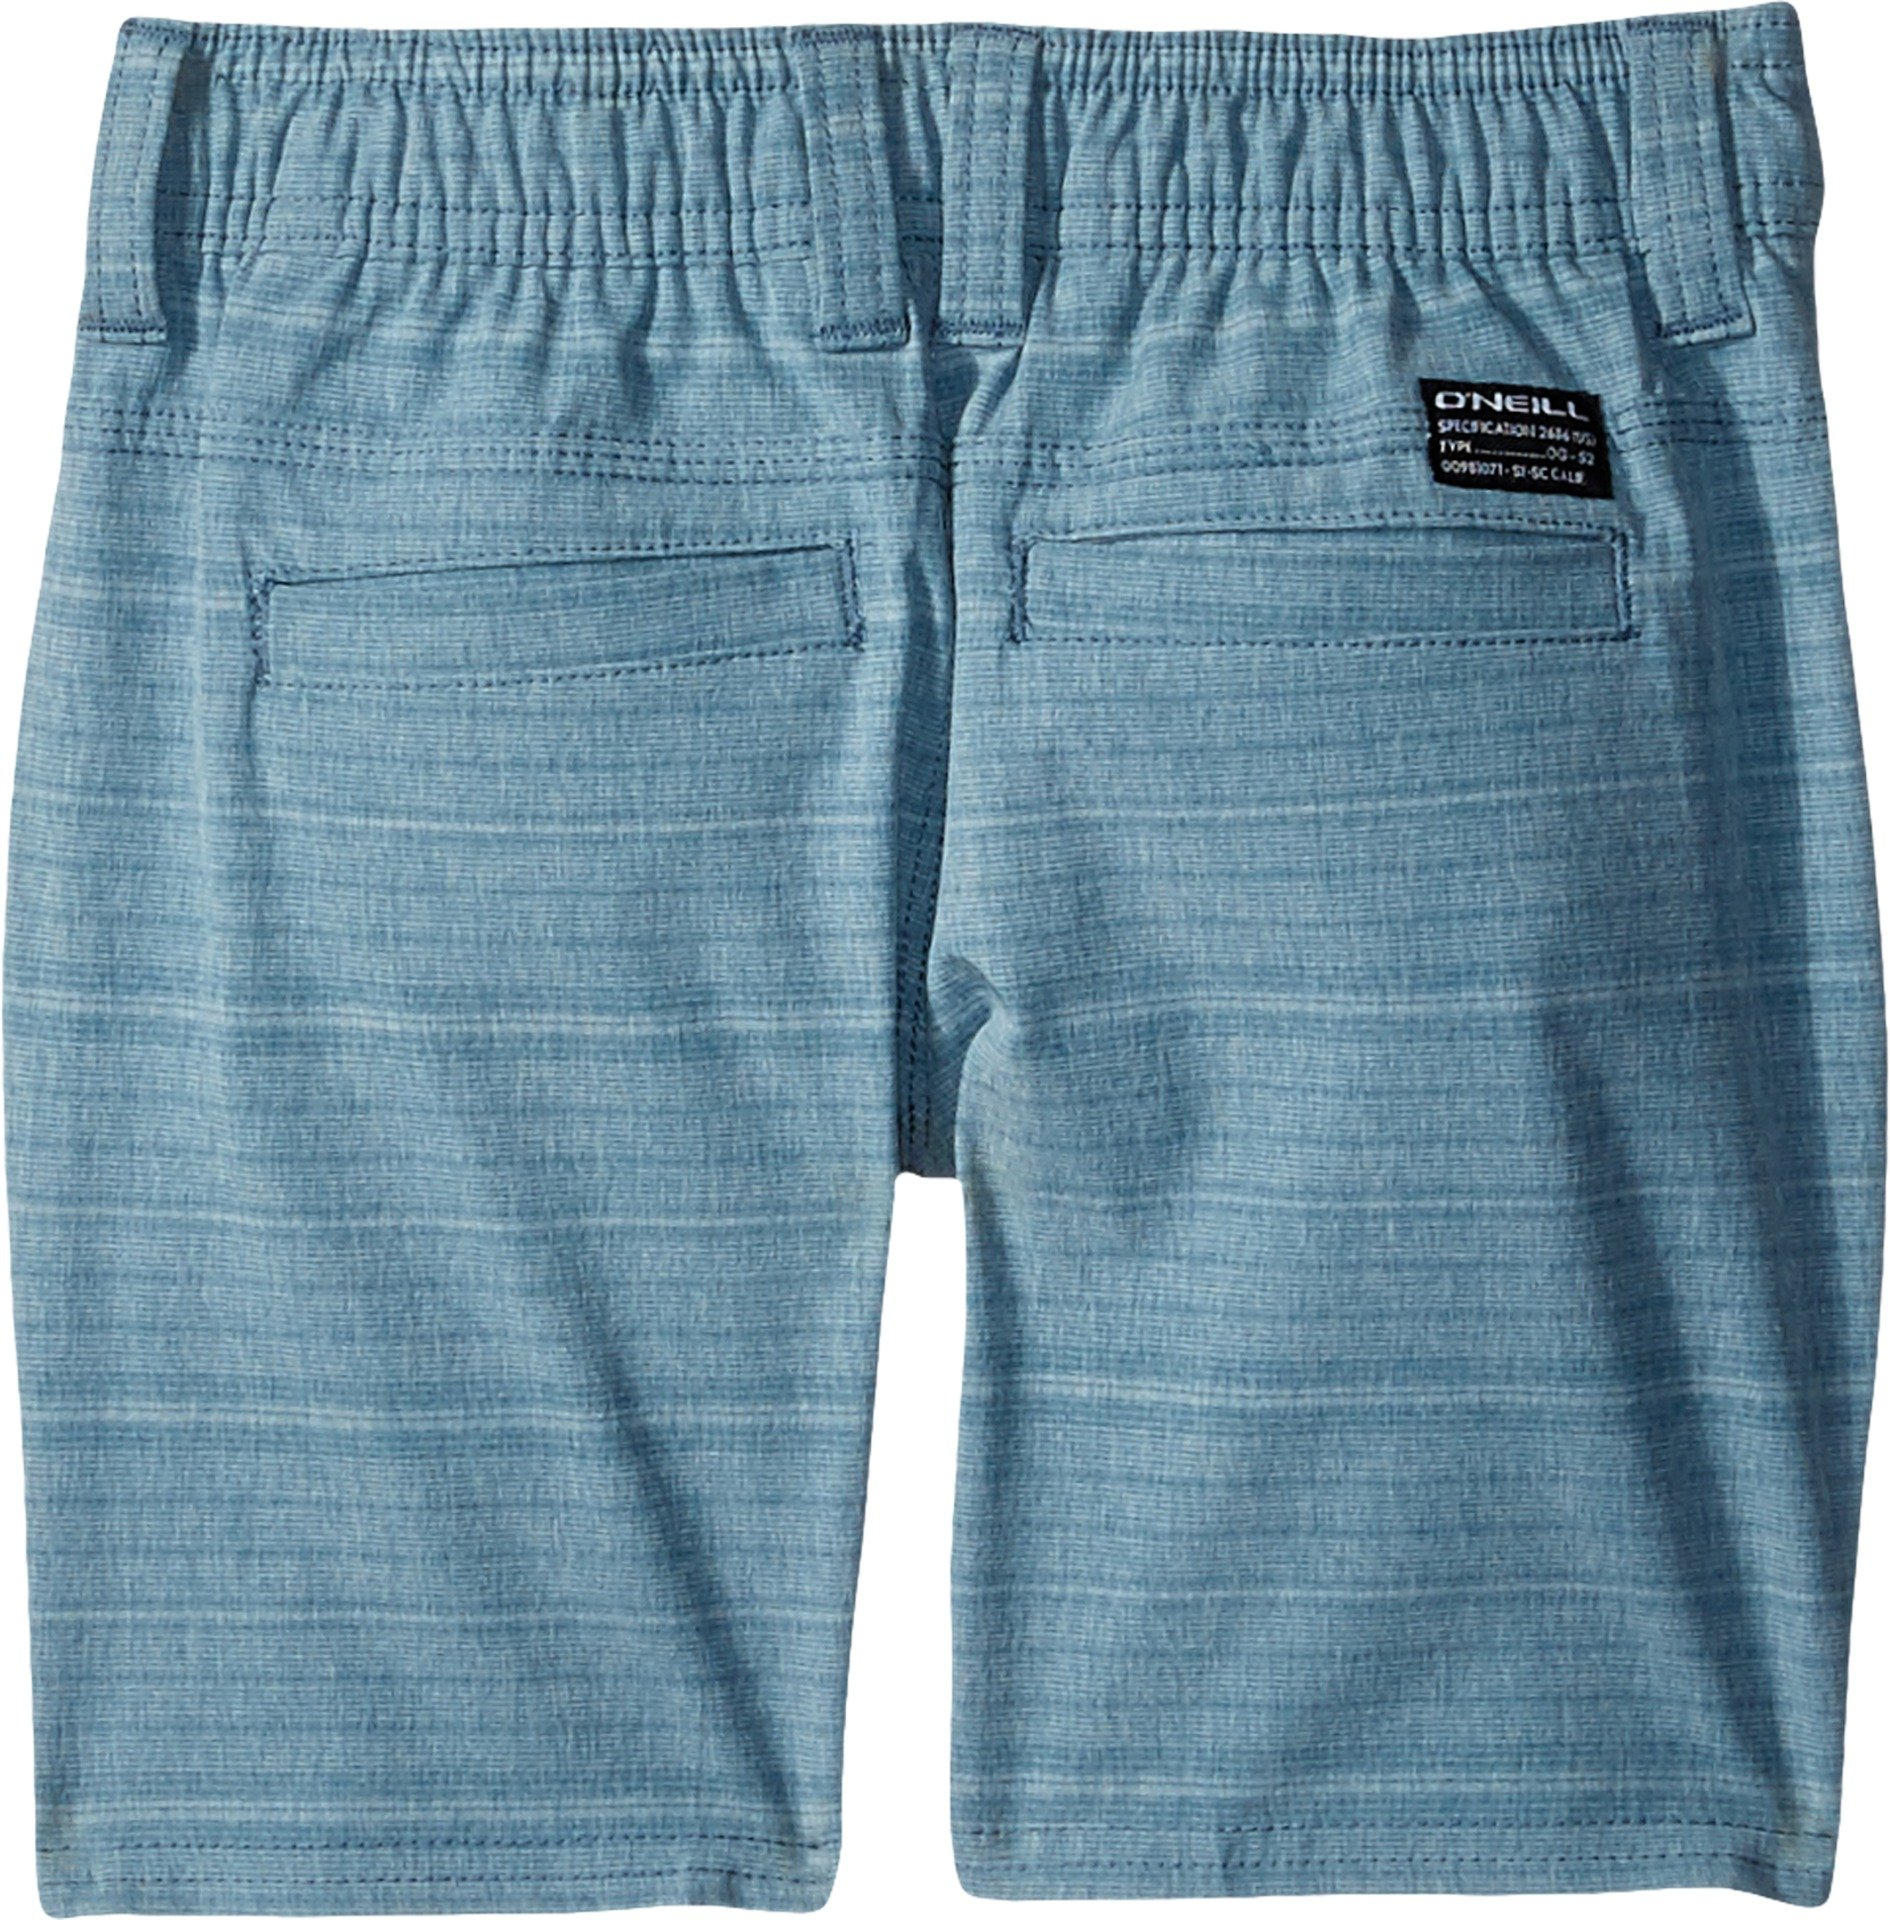 O'Neill Little Boys' Locked Quick Dry Hybrid Boardshort, Stripe Deep Teal, 2T by O'Neill (Image #2)